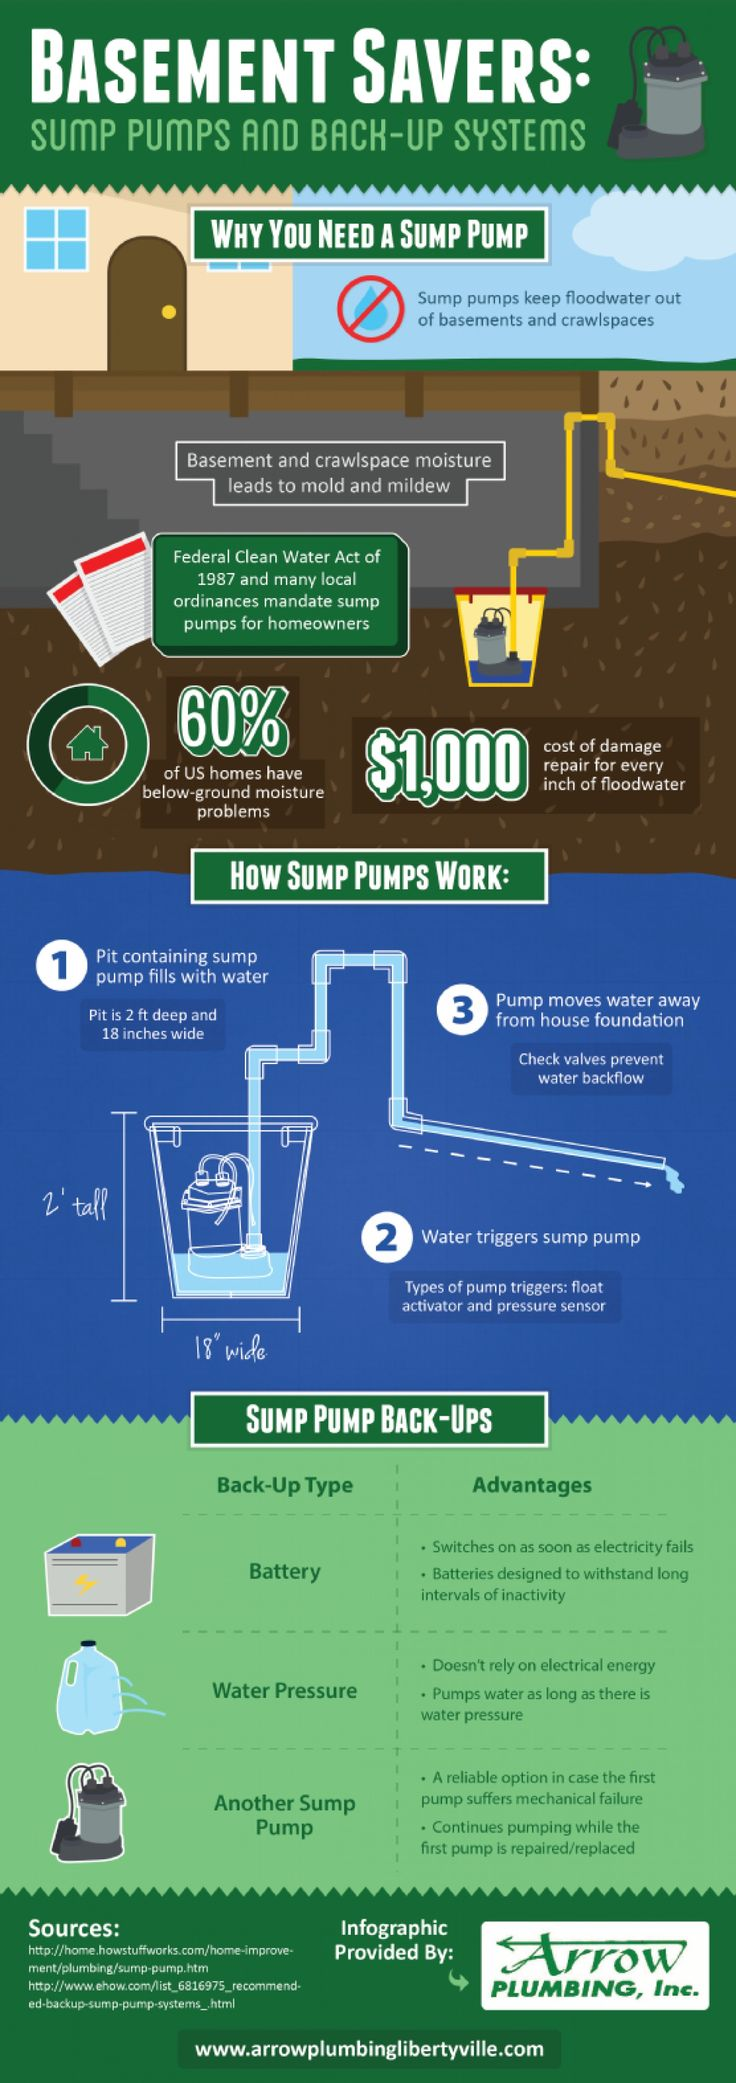 Best sump pump backup system - Basement Savers Sump Pumps And Back Up Systems